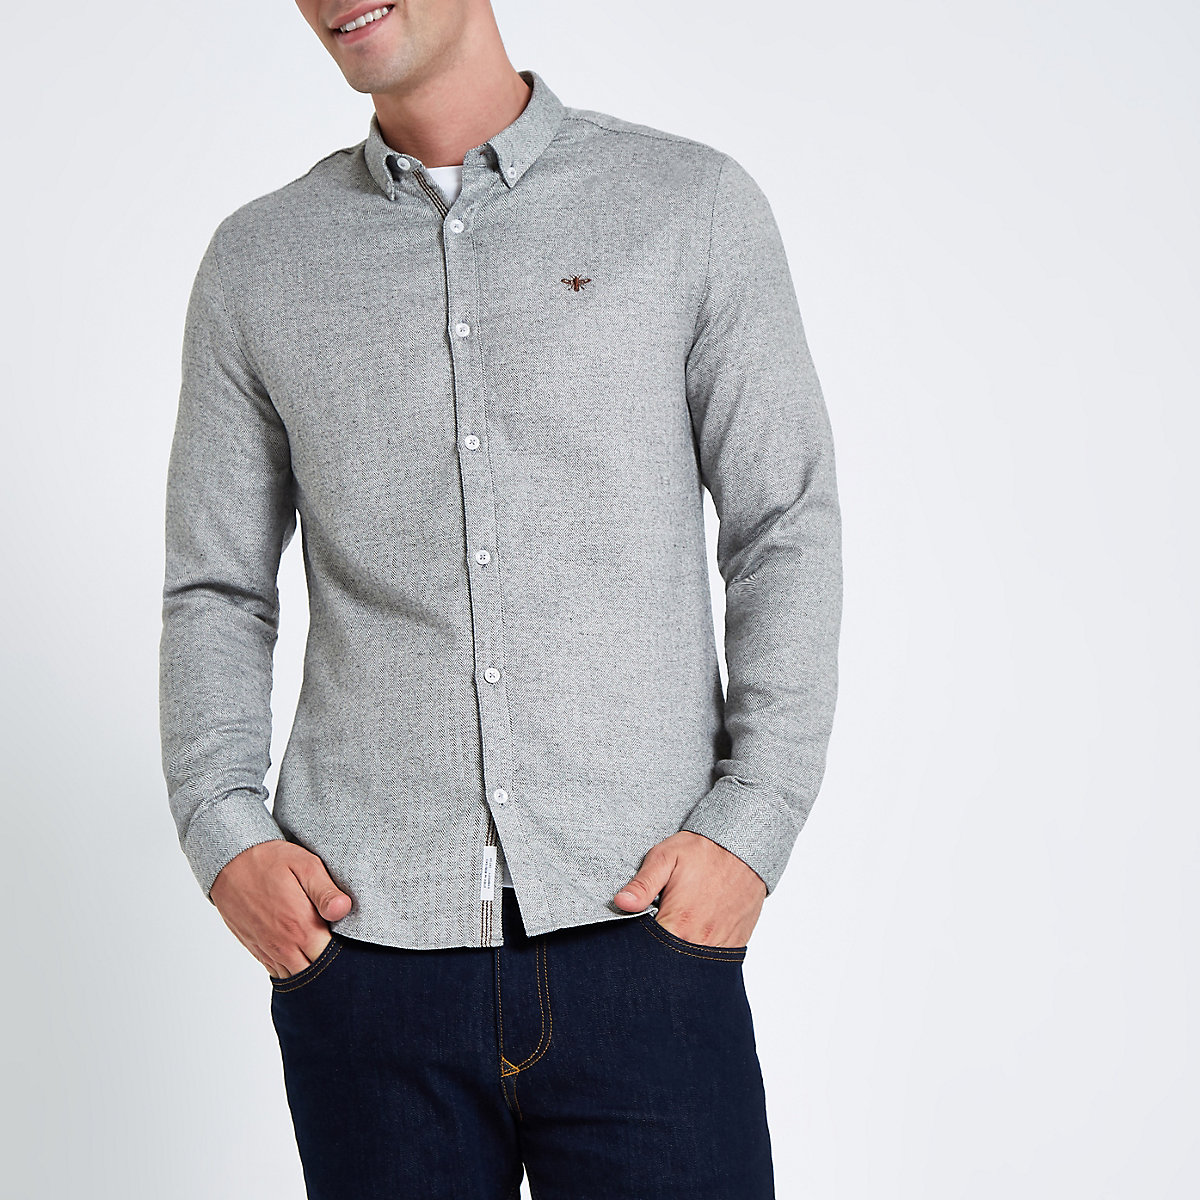 Grey herringbone wasp button up shirt